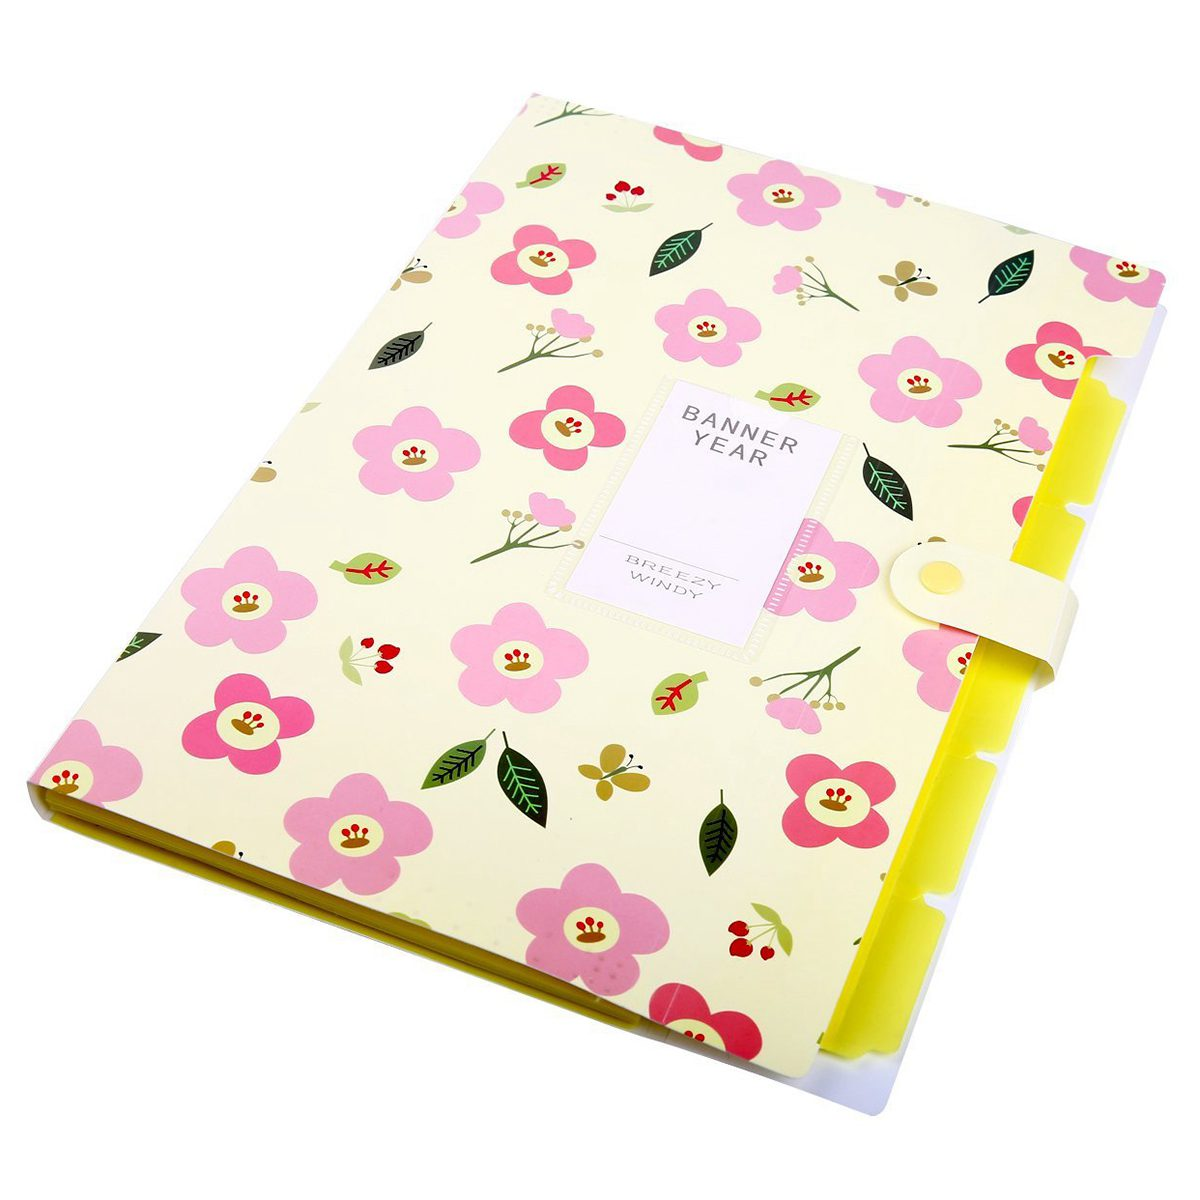 Affordable Yellow Floral Printed PVC Accordion Document File Folder Expanding 5 Layers Letter Organizer For Office and School skydue floral printed accordion document file folder expanding letter organizer blue